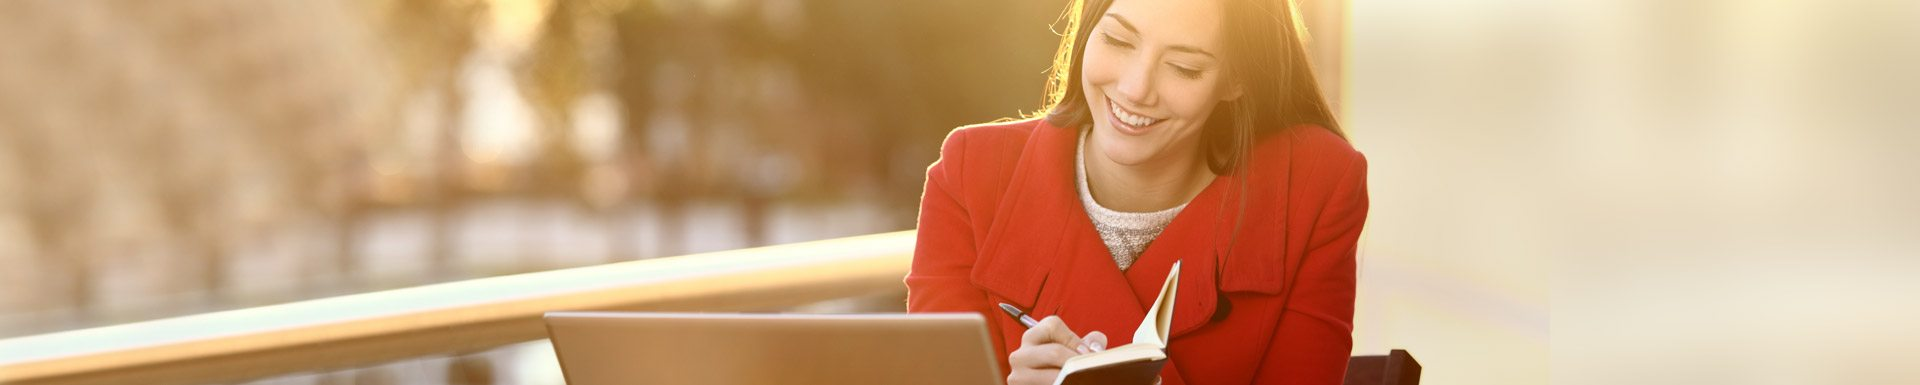 10 Online Jobs for Students: Start Your Career at Home